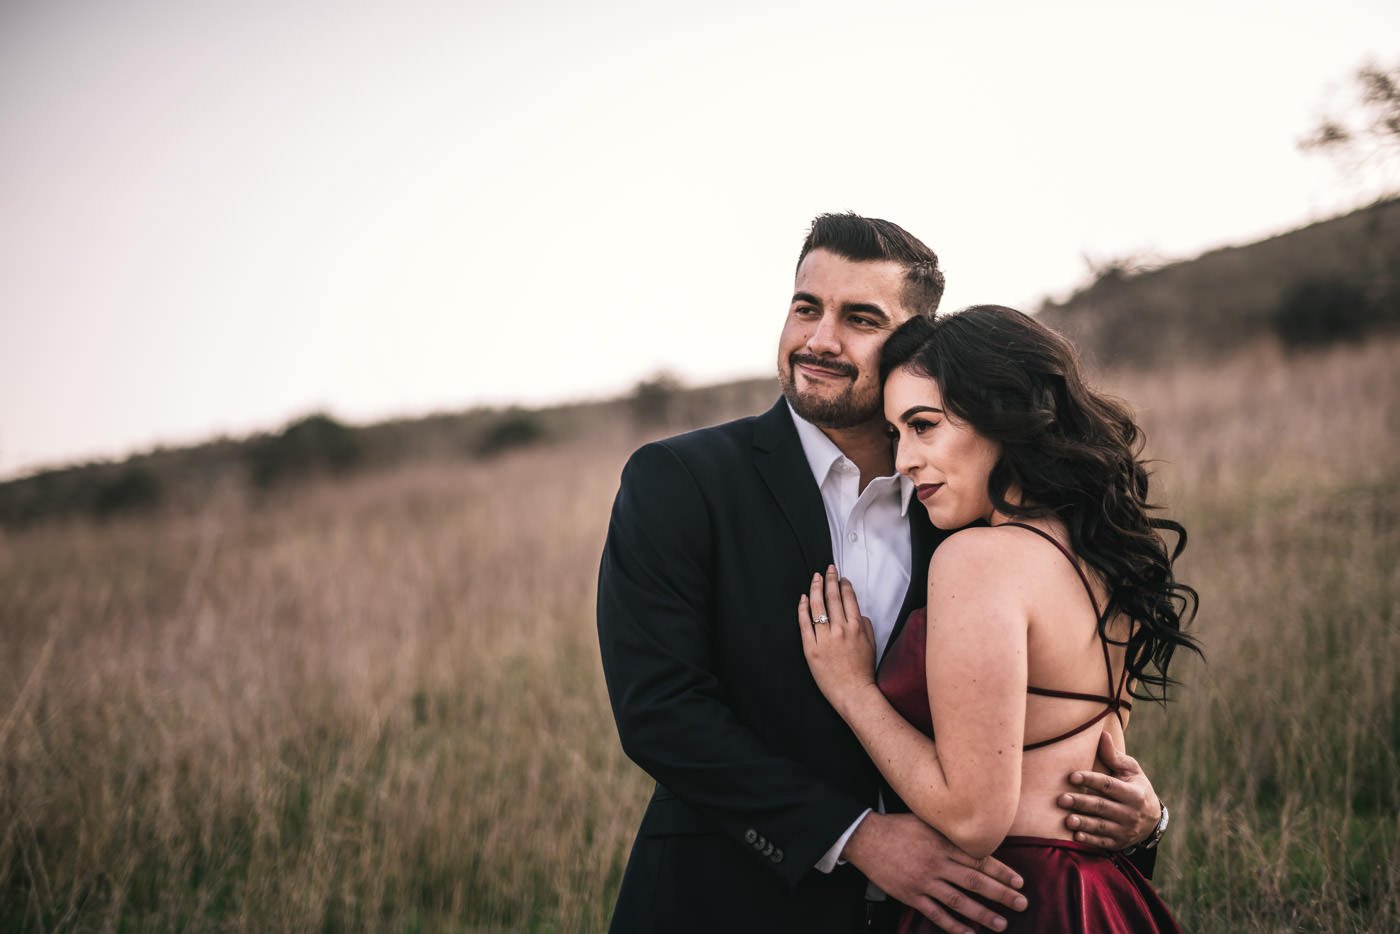 Southern California engagement photographer.